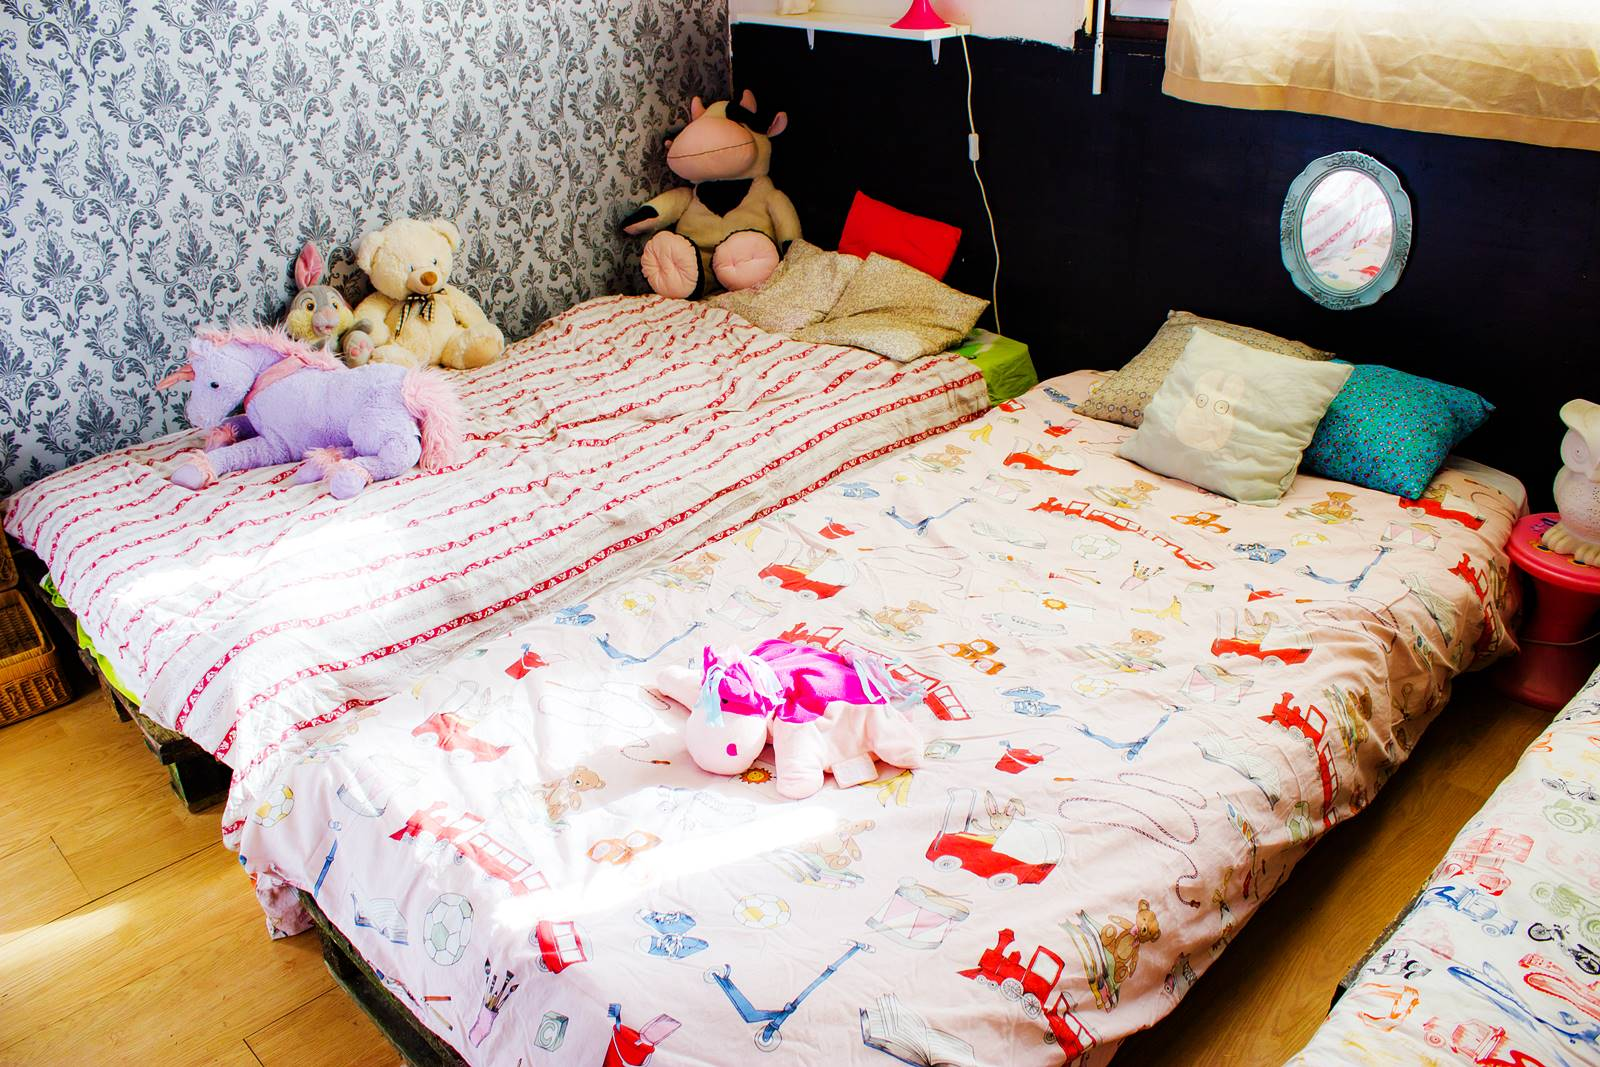 Diy chambre dortoir enfant france 8blog